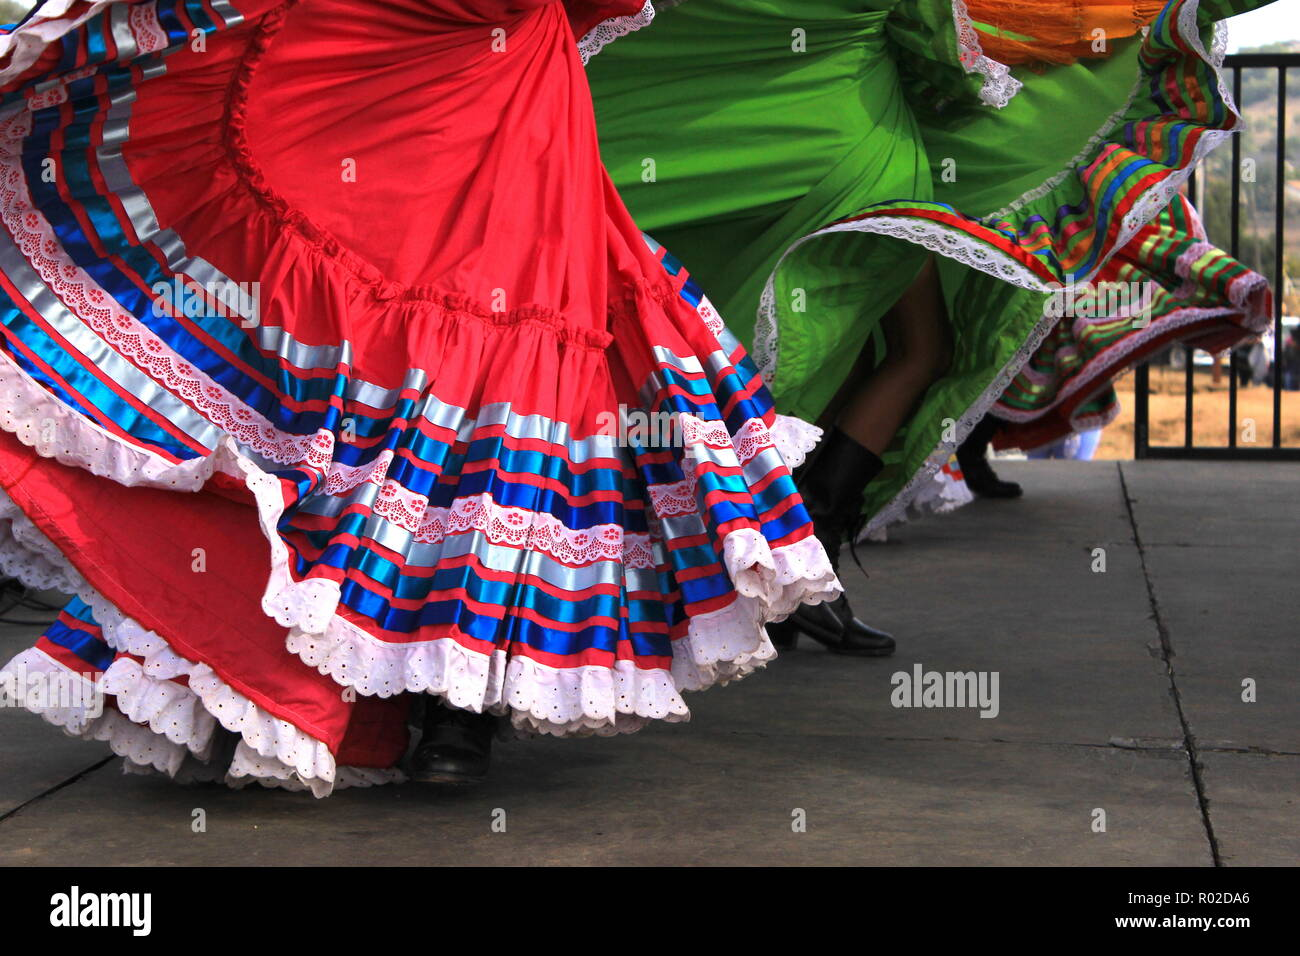 Colorful skirts fly during traditional Mexican dancing Stock Photo